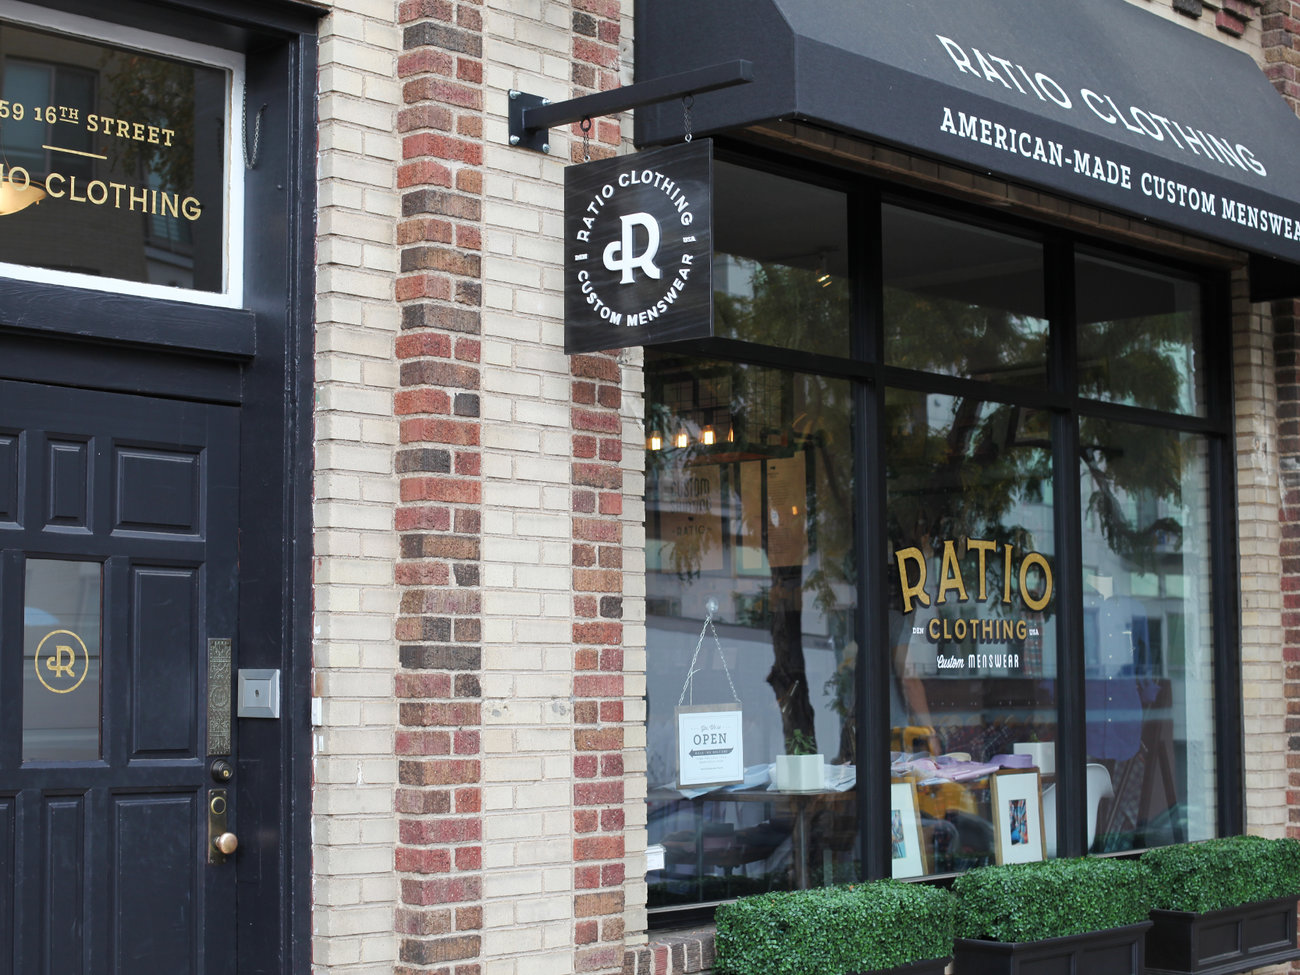 Ratio Clothing Store in Denver